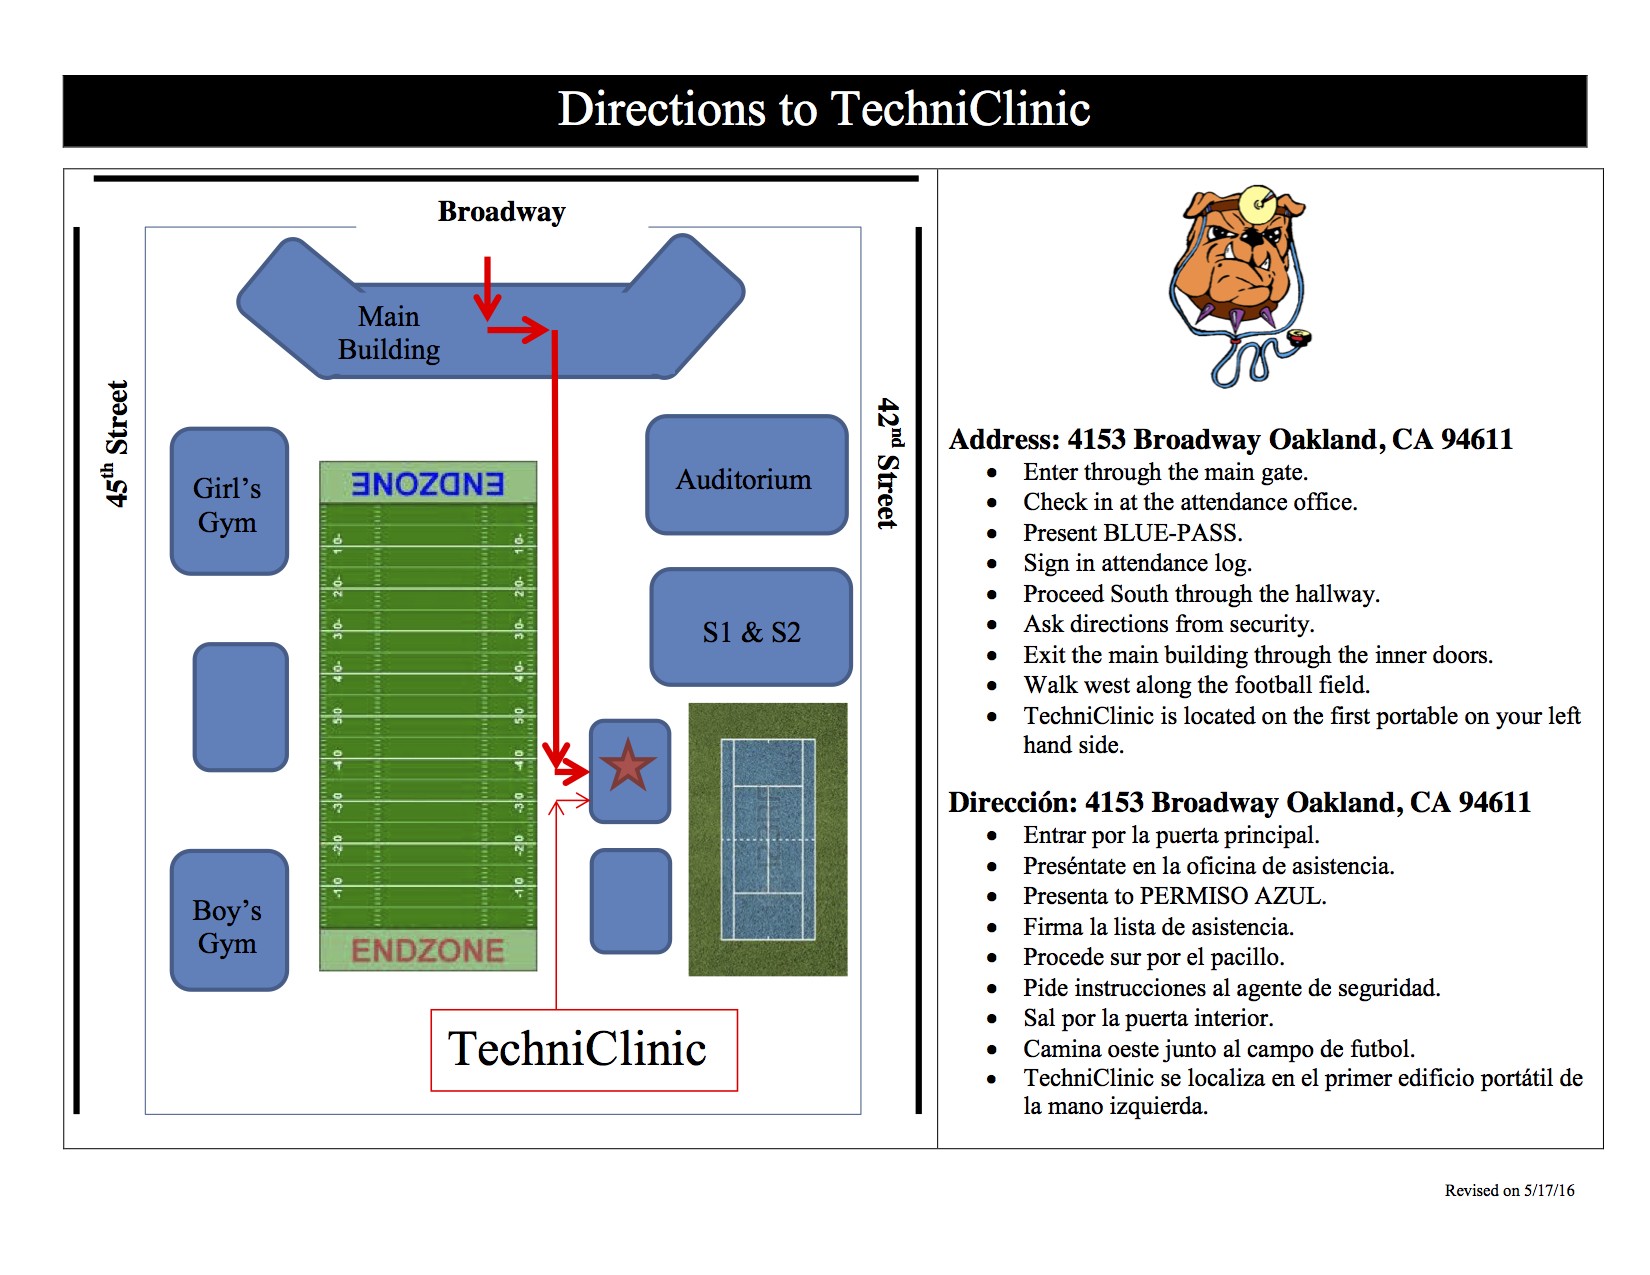 Directions to TechniClinic